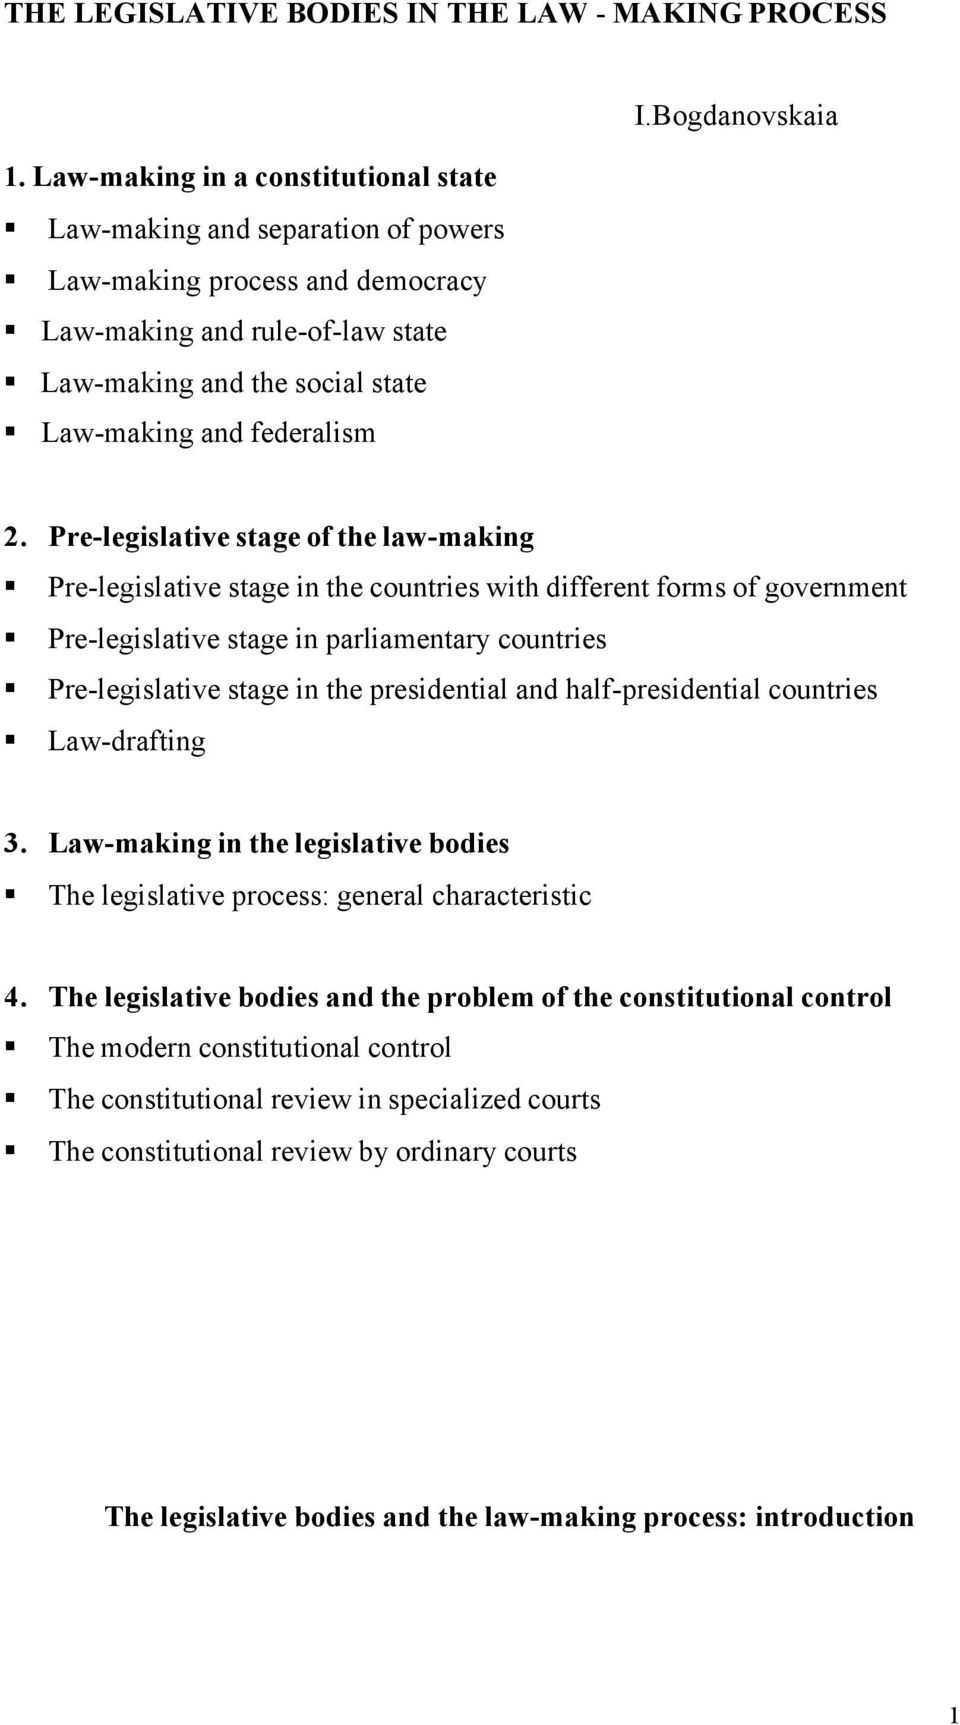 Pre-legislative stage of the law-making Pre-legislative stage in the countries with different forms of government Pre-legislative stage in parliamentary countries Pre-legislative stage in the